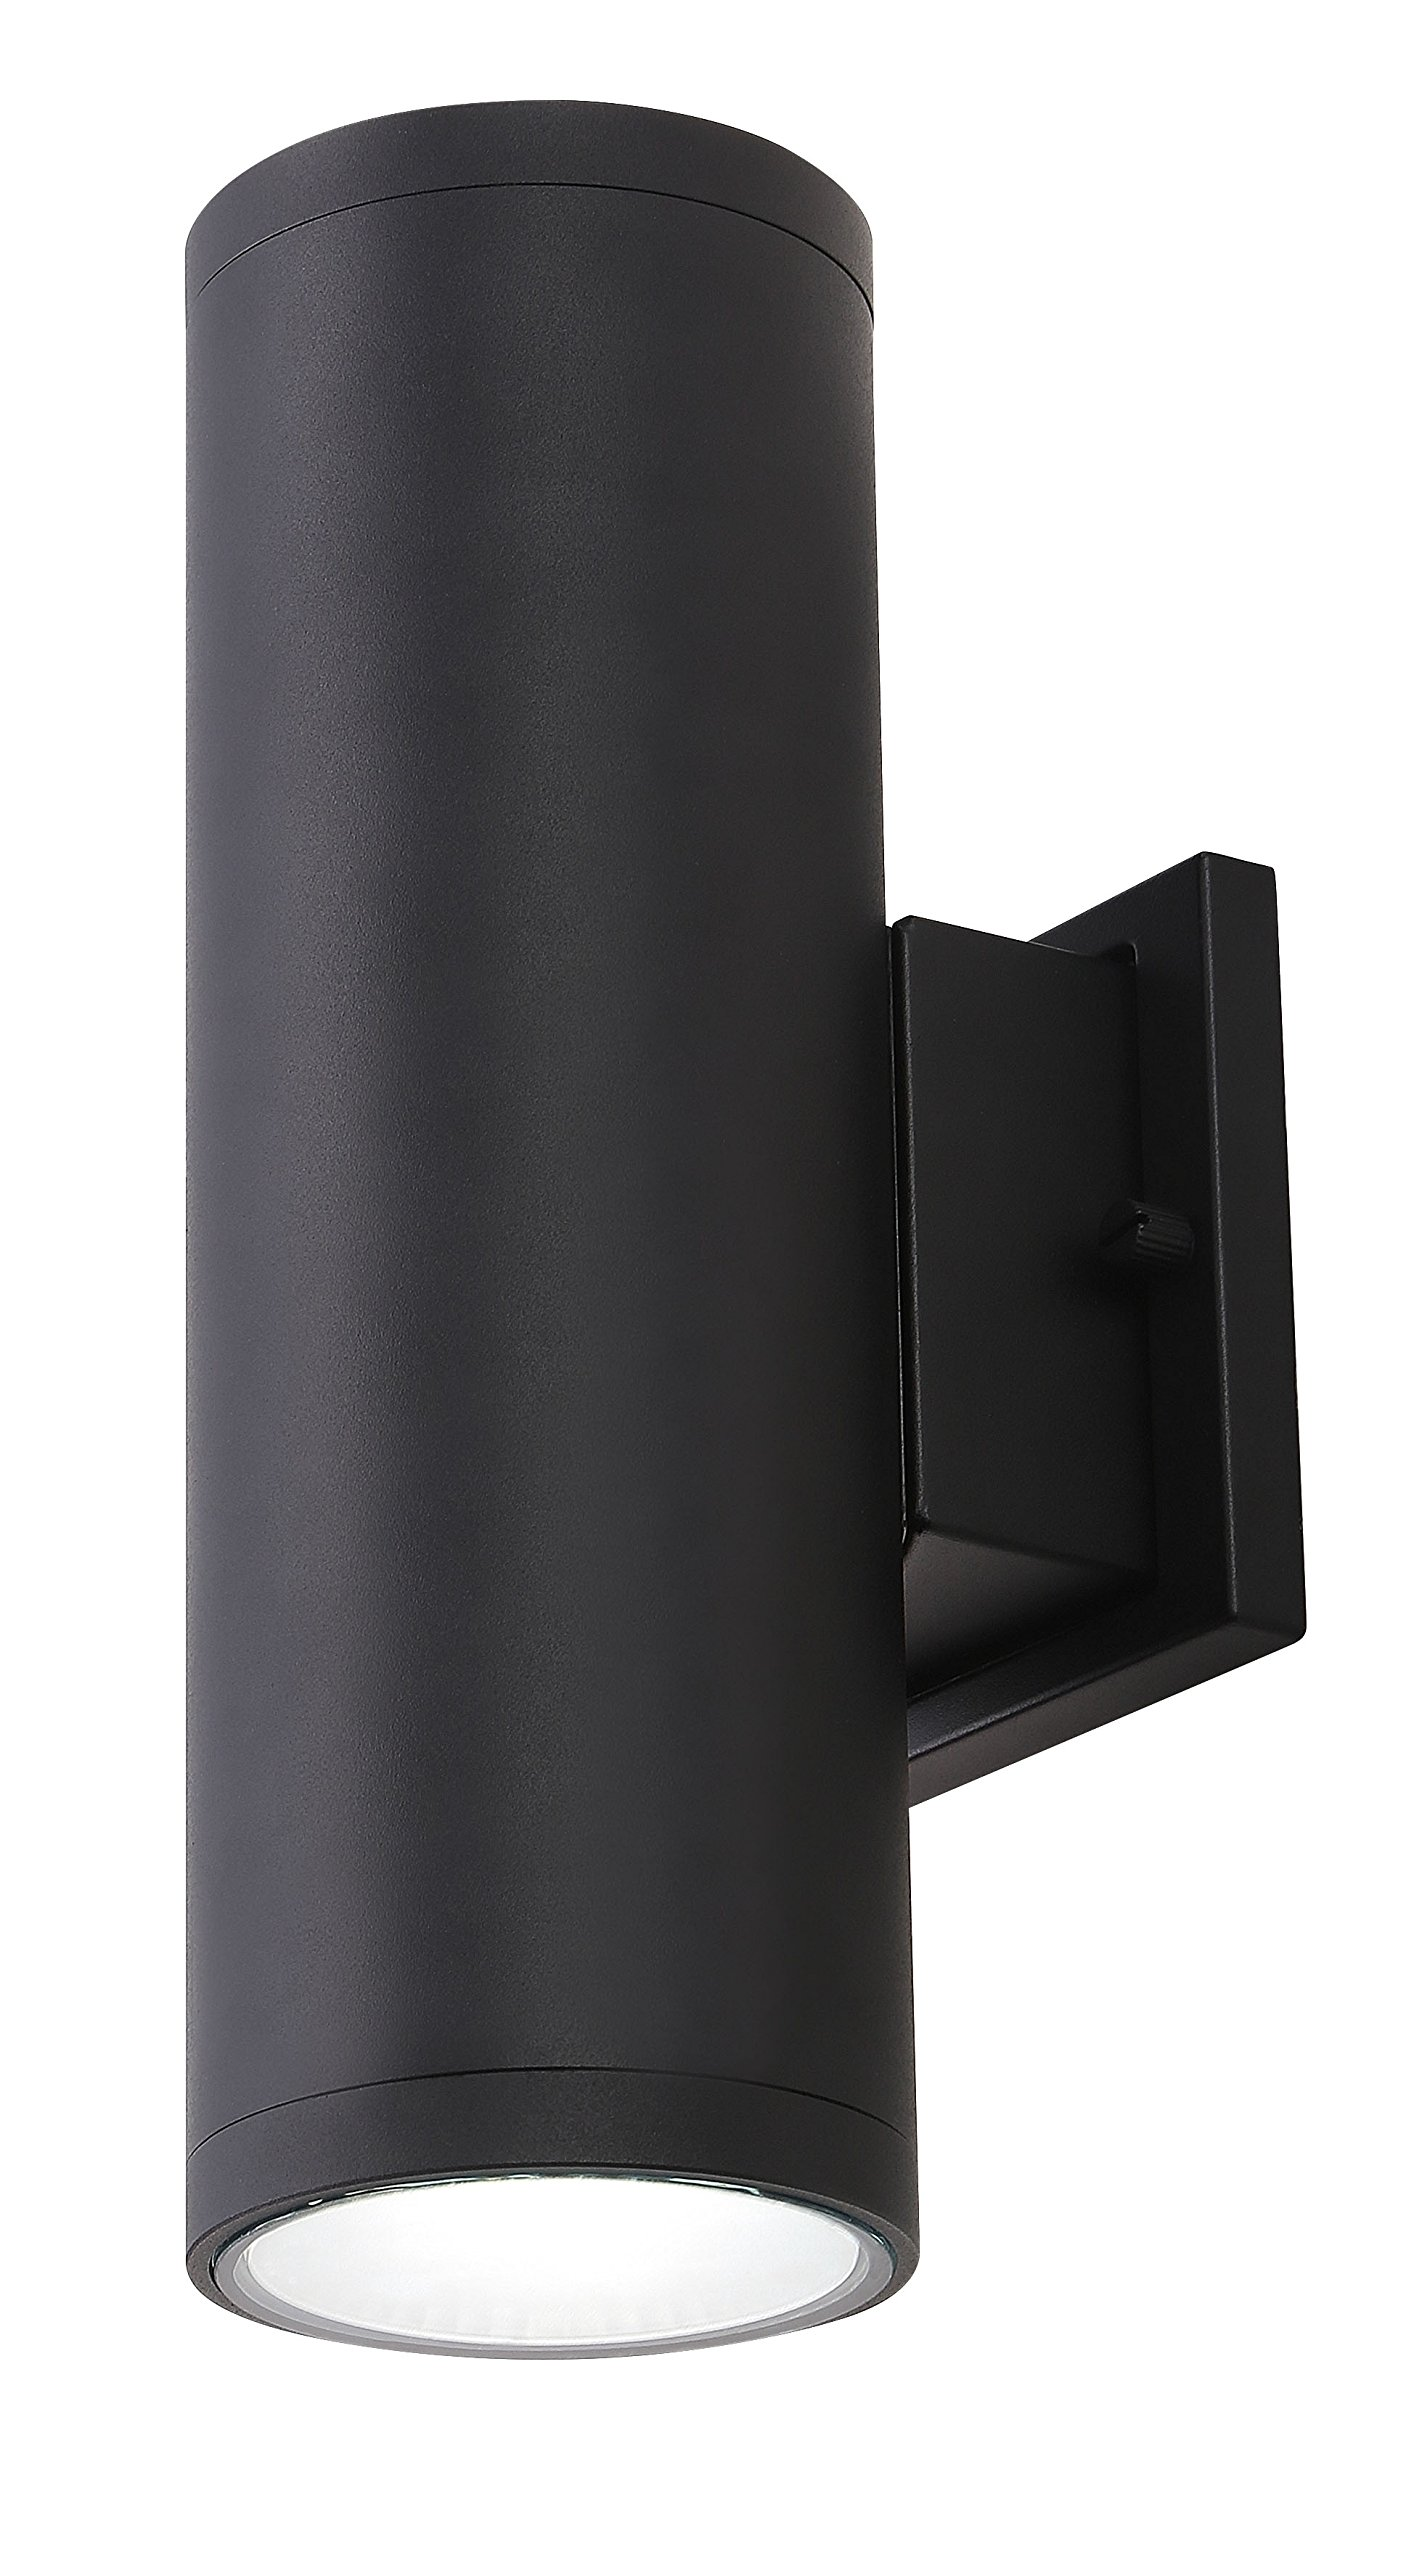 Cloudy Bay LOWLUD418850BK LED outdoor wall fixture,18W 1260lumens 5000K daylight,Up and down porch light,Black